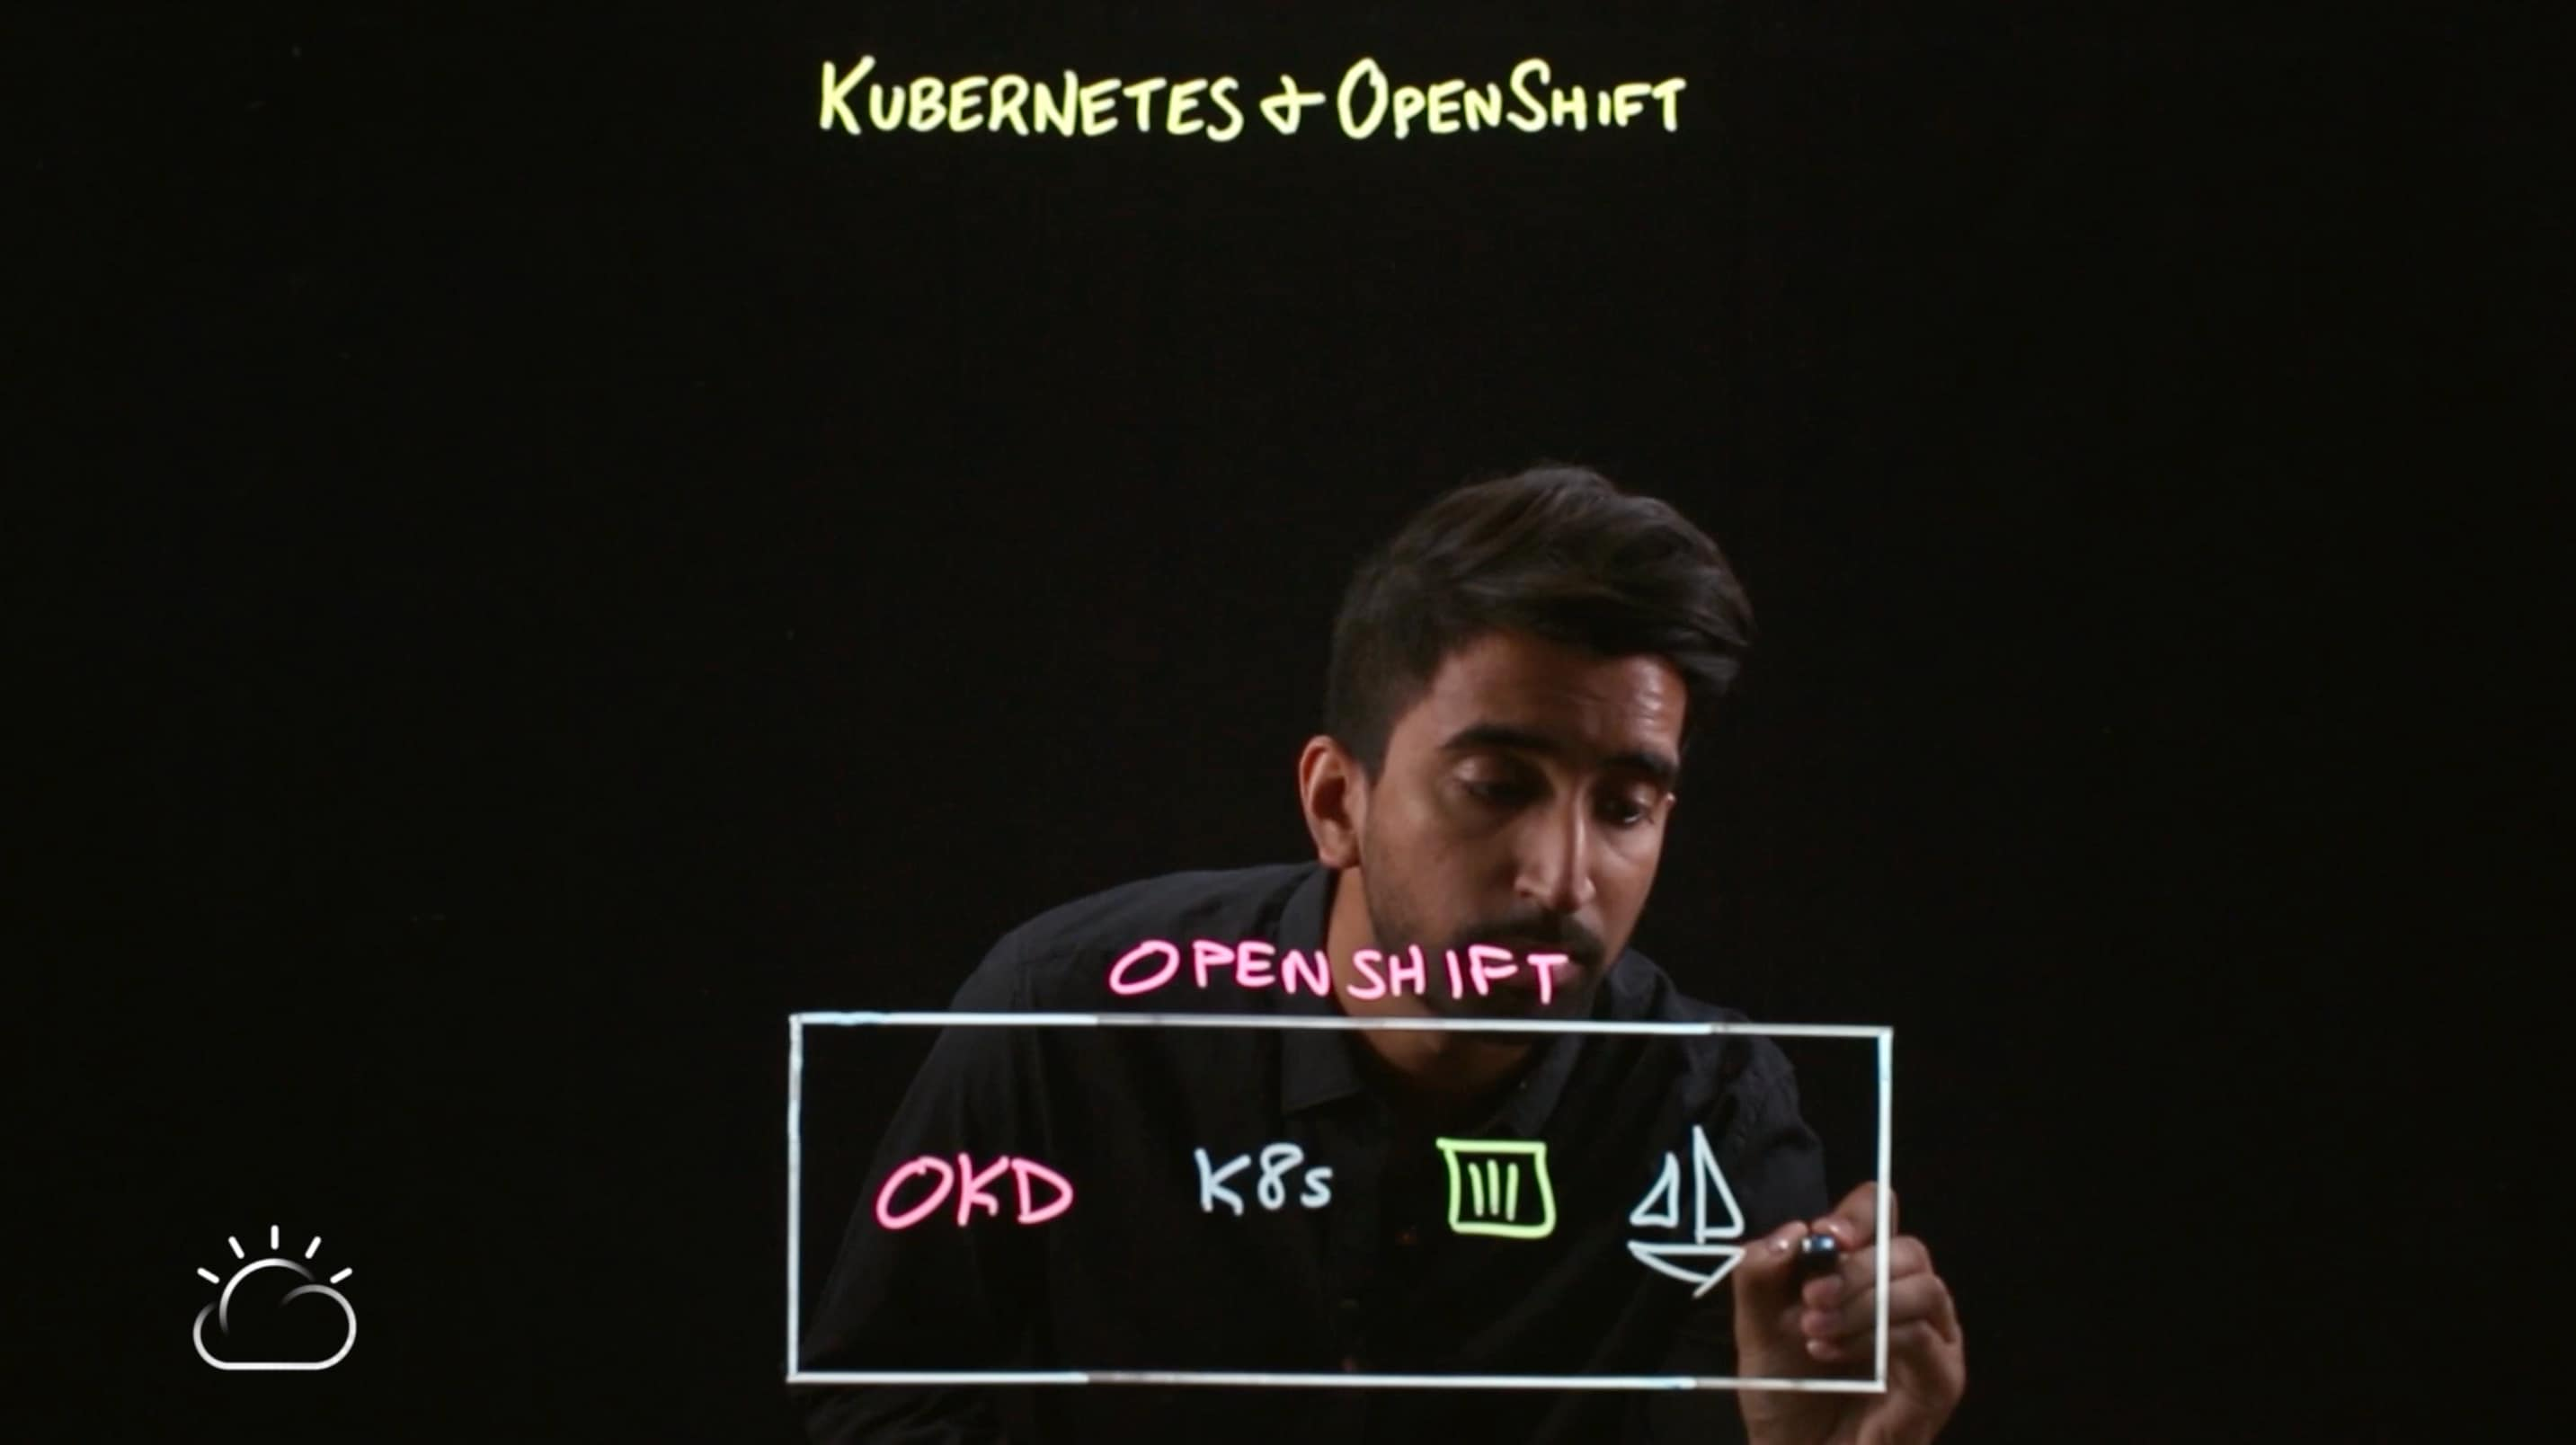 OpenShift and OKD